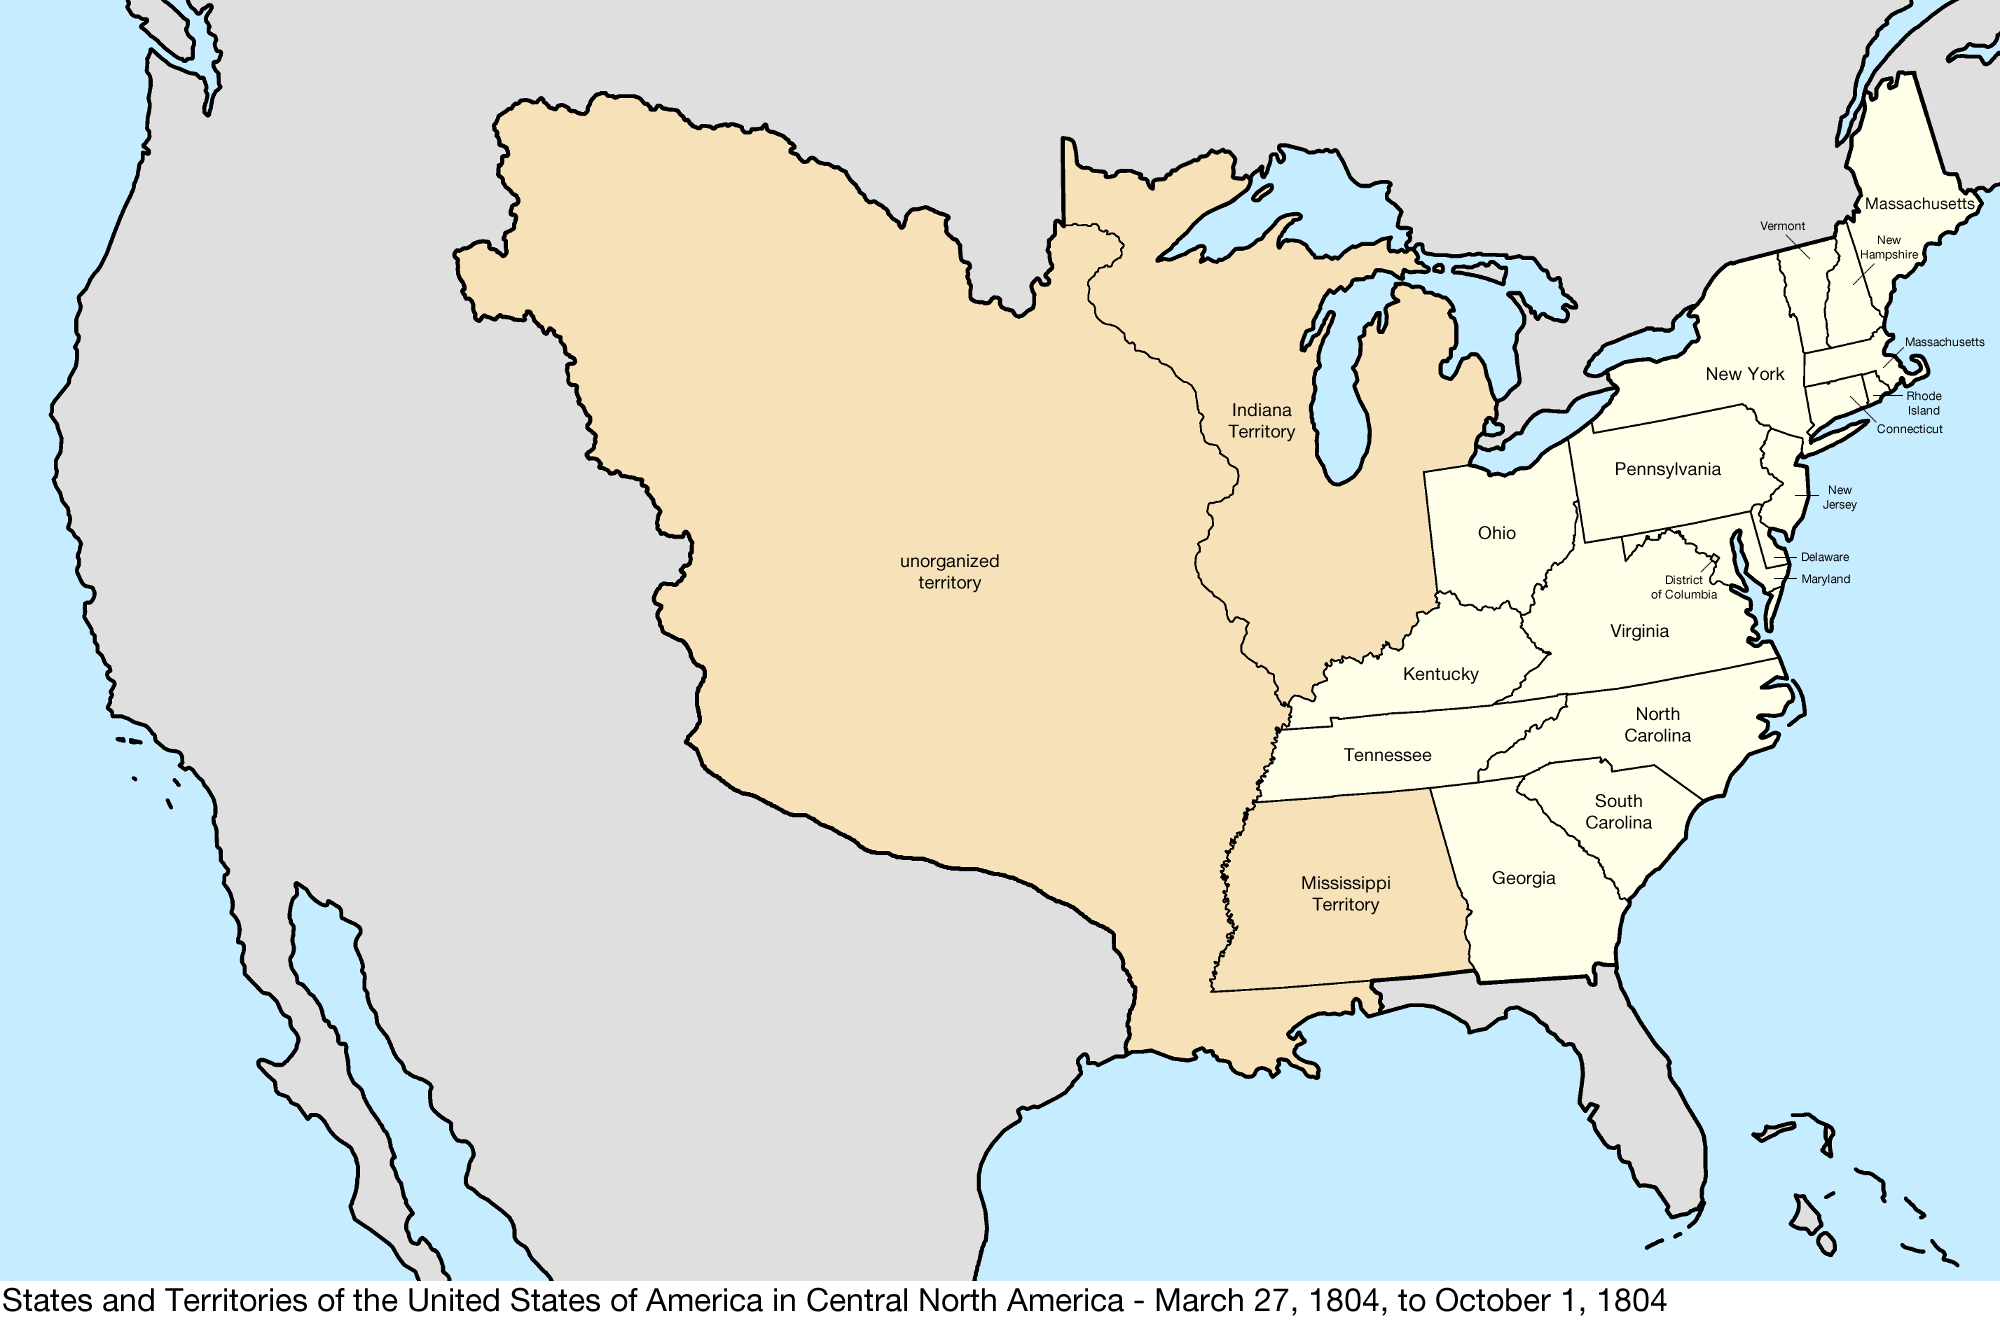 FileUnited States Central map 18040327 to 18041001png